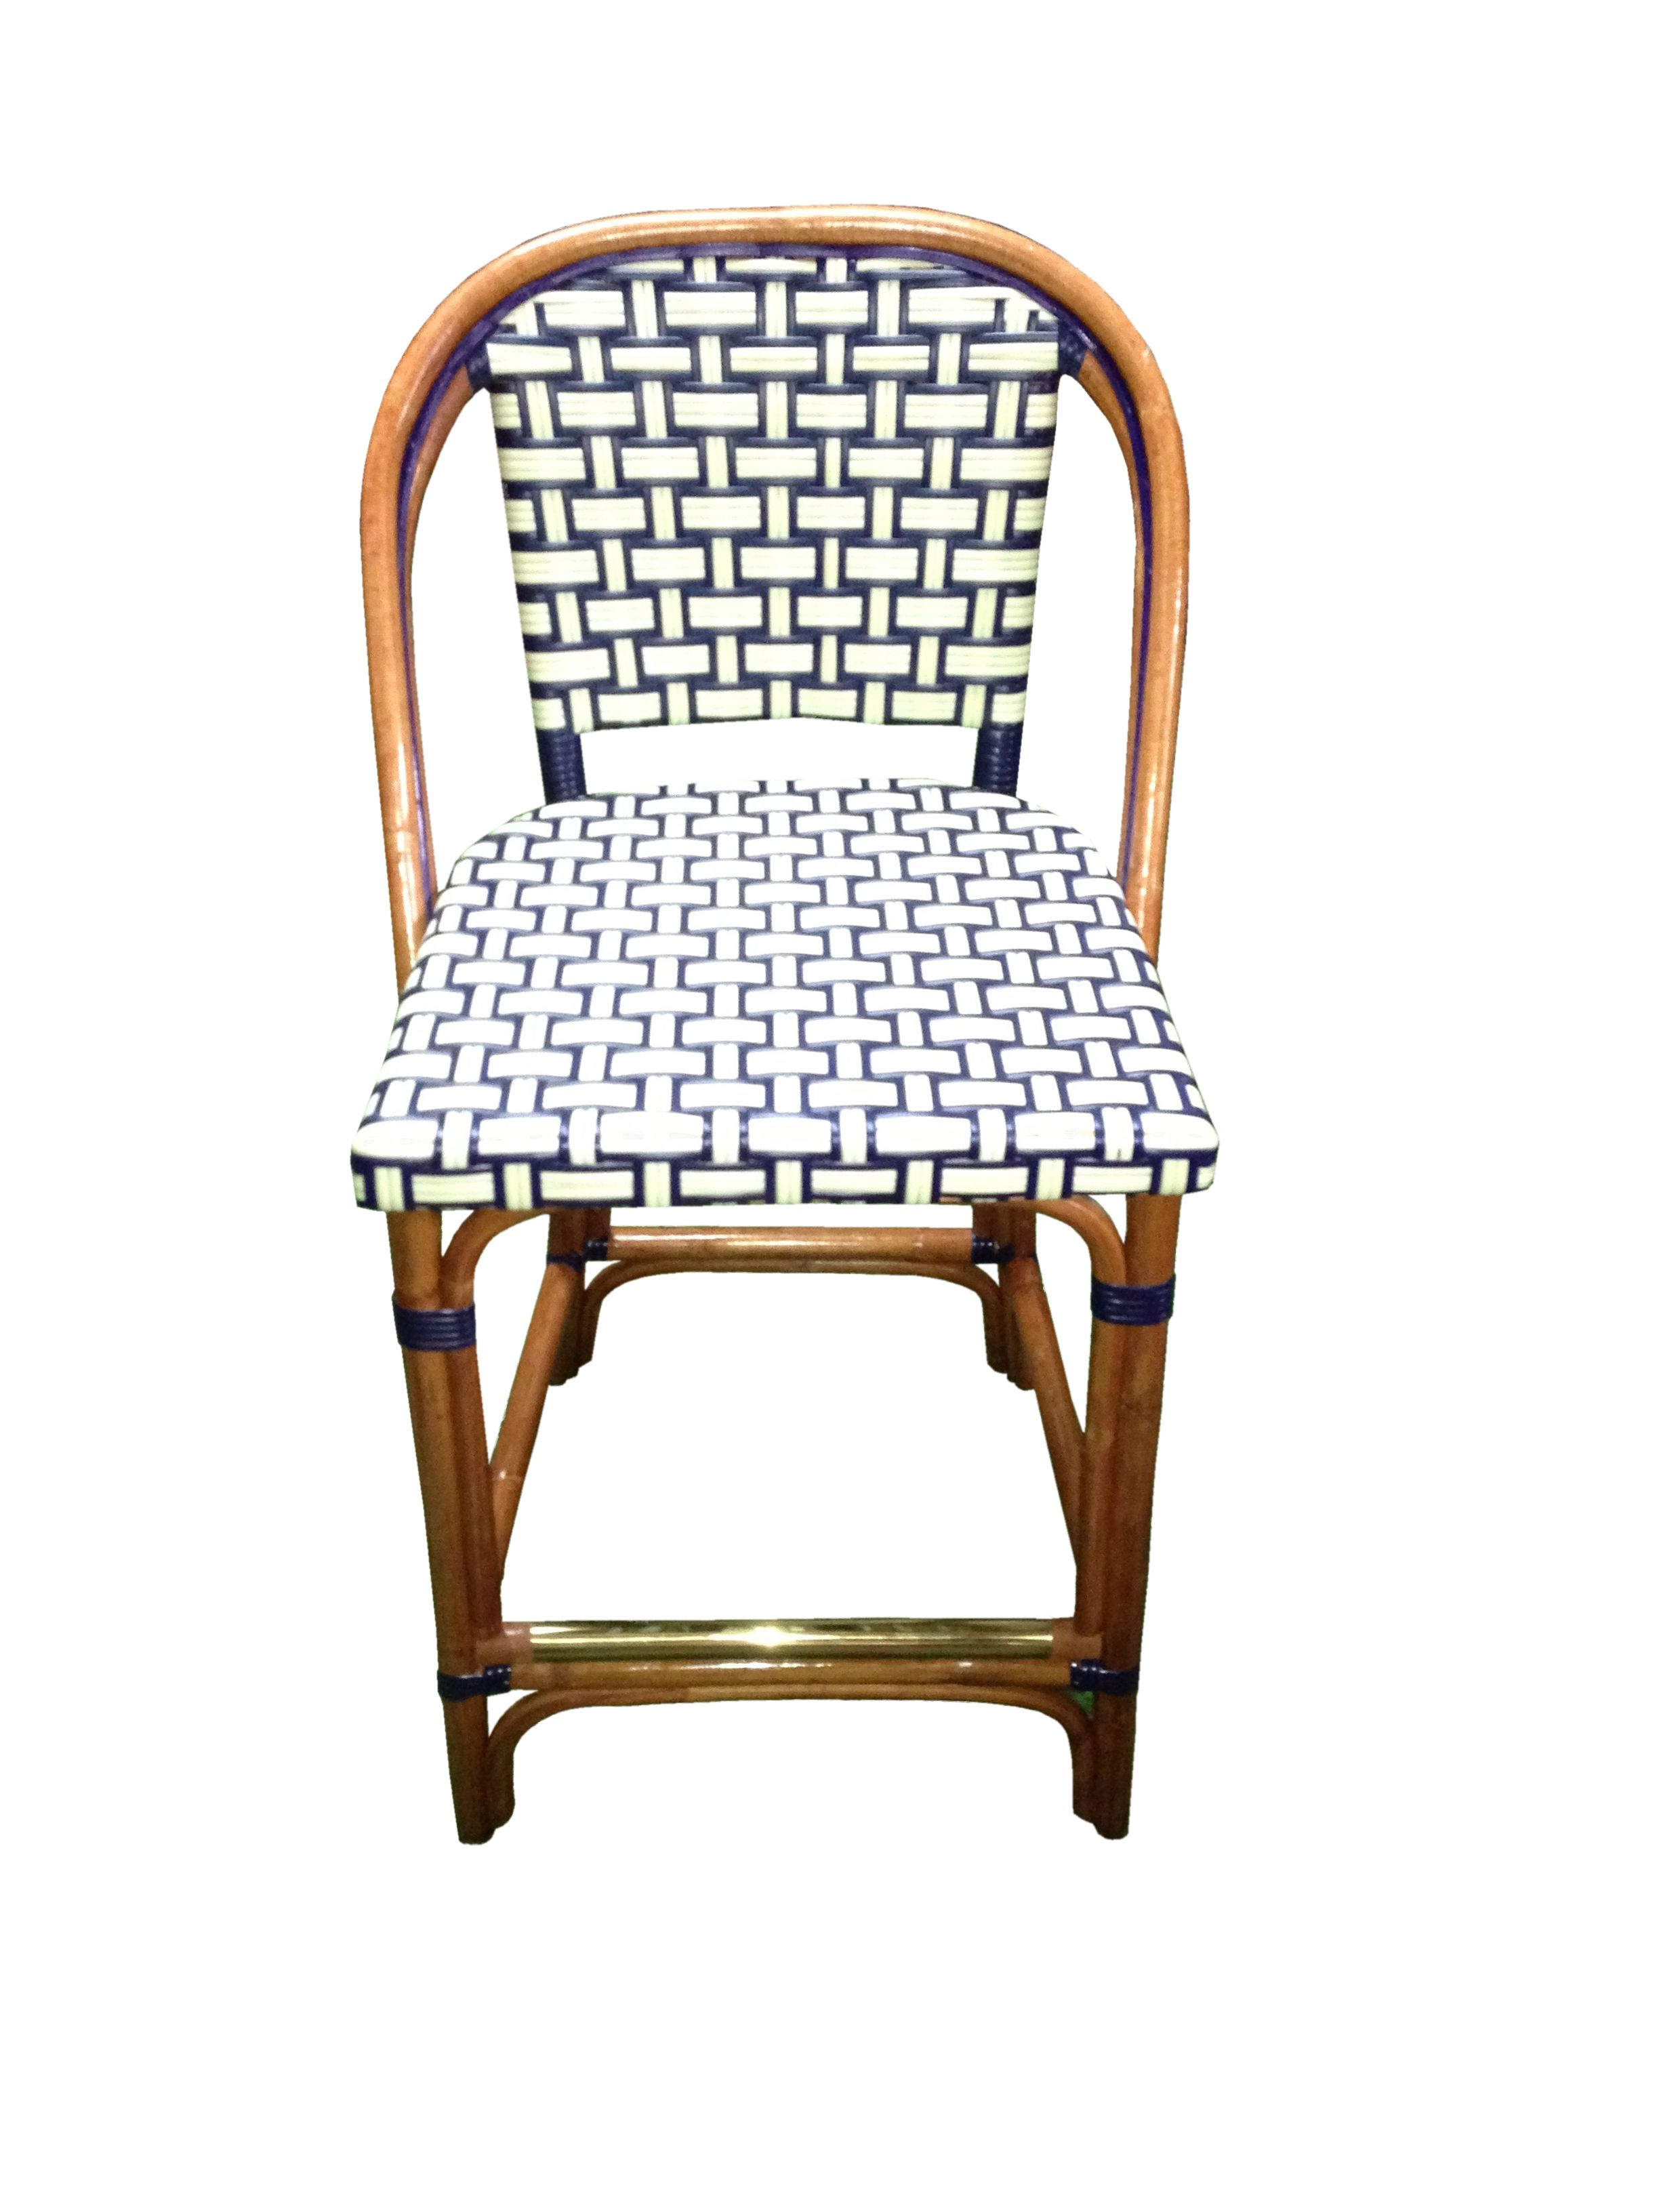 Hk 814 Diablo Ivory Navy Light Honey Bistro Stools Bistro Chairs French Bistro